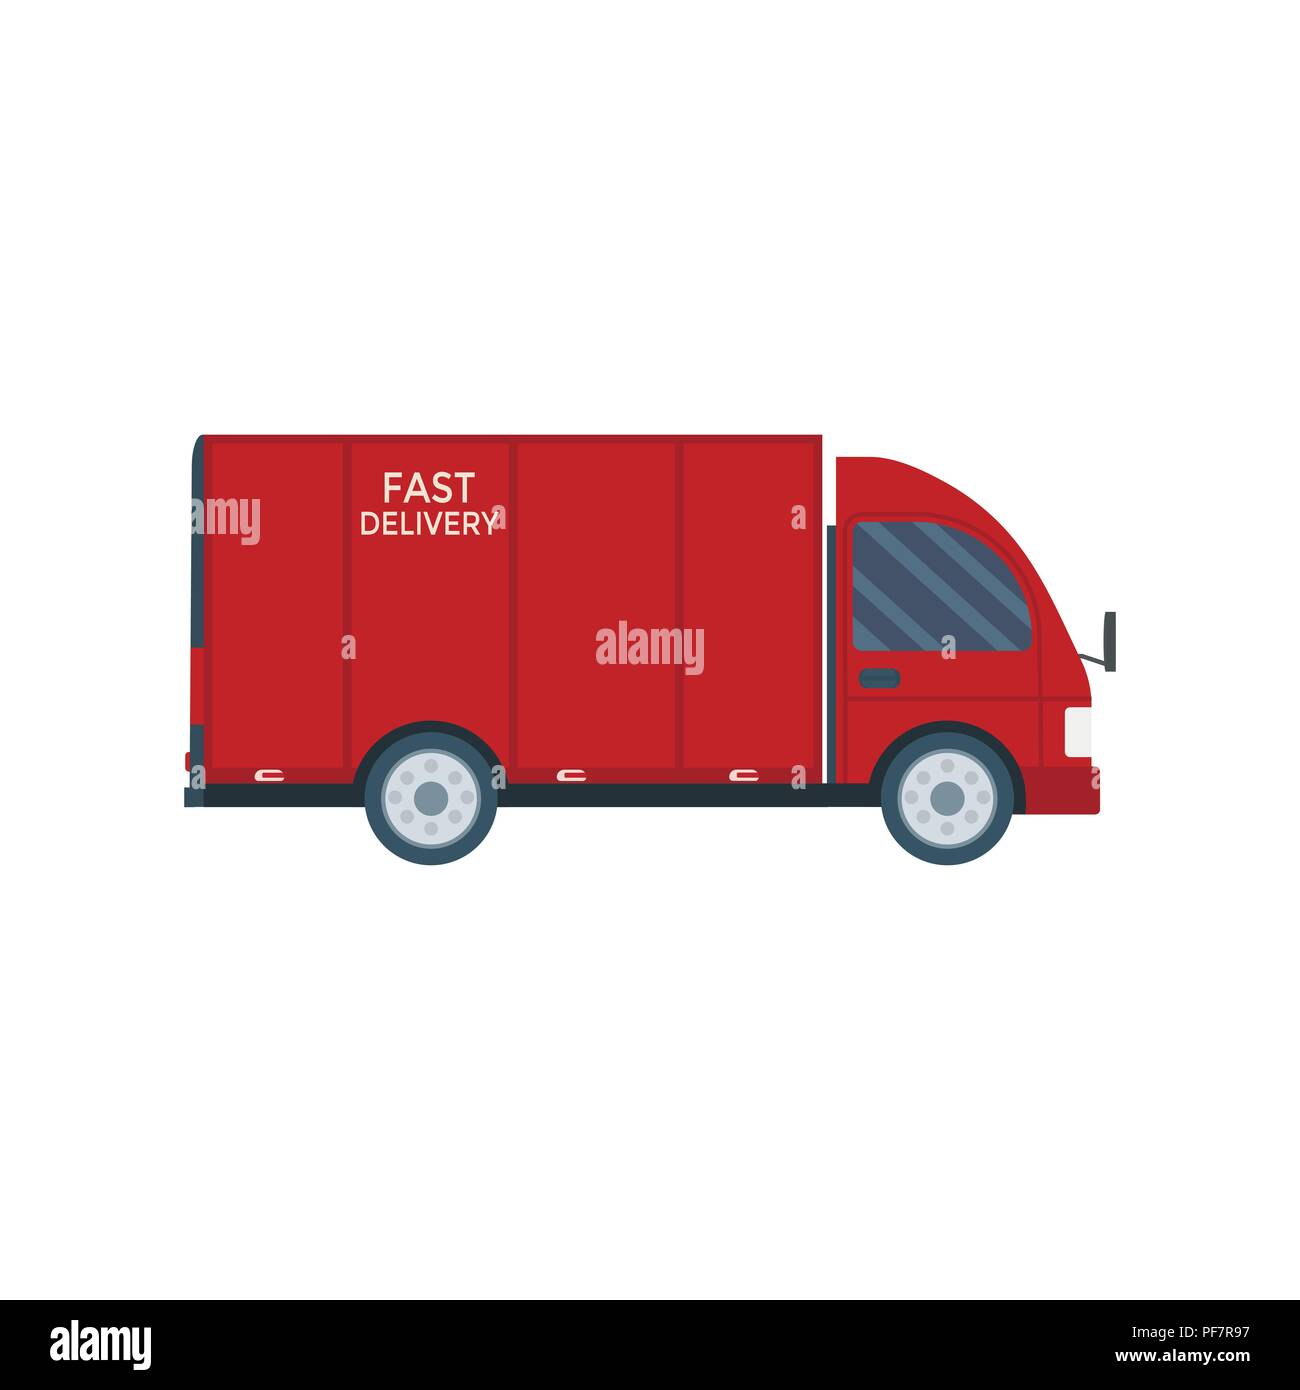 Logistics and delivery icon service isolated on white background: truck, lorry, van. Postal service creative design. Vector flat illustration. - Stock Image